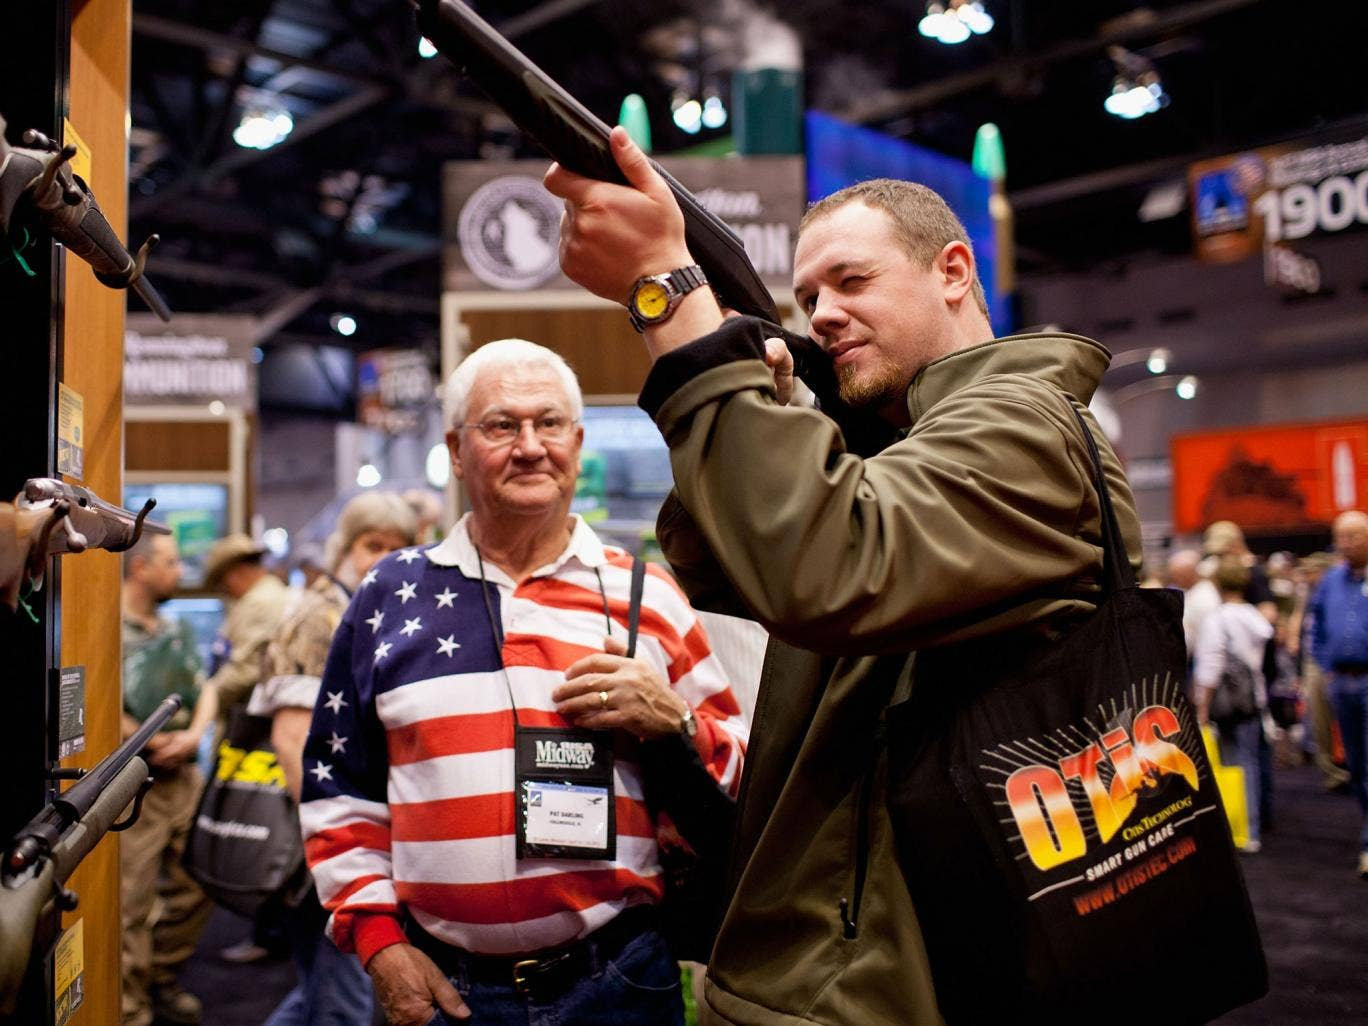 Sure shots: Testing the latest weaponry at a National Rifle Association fair